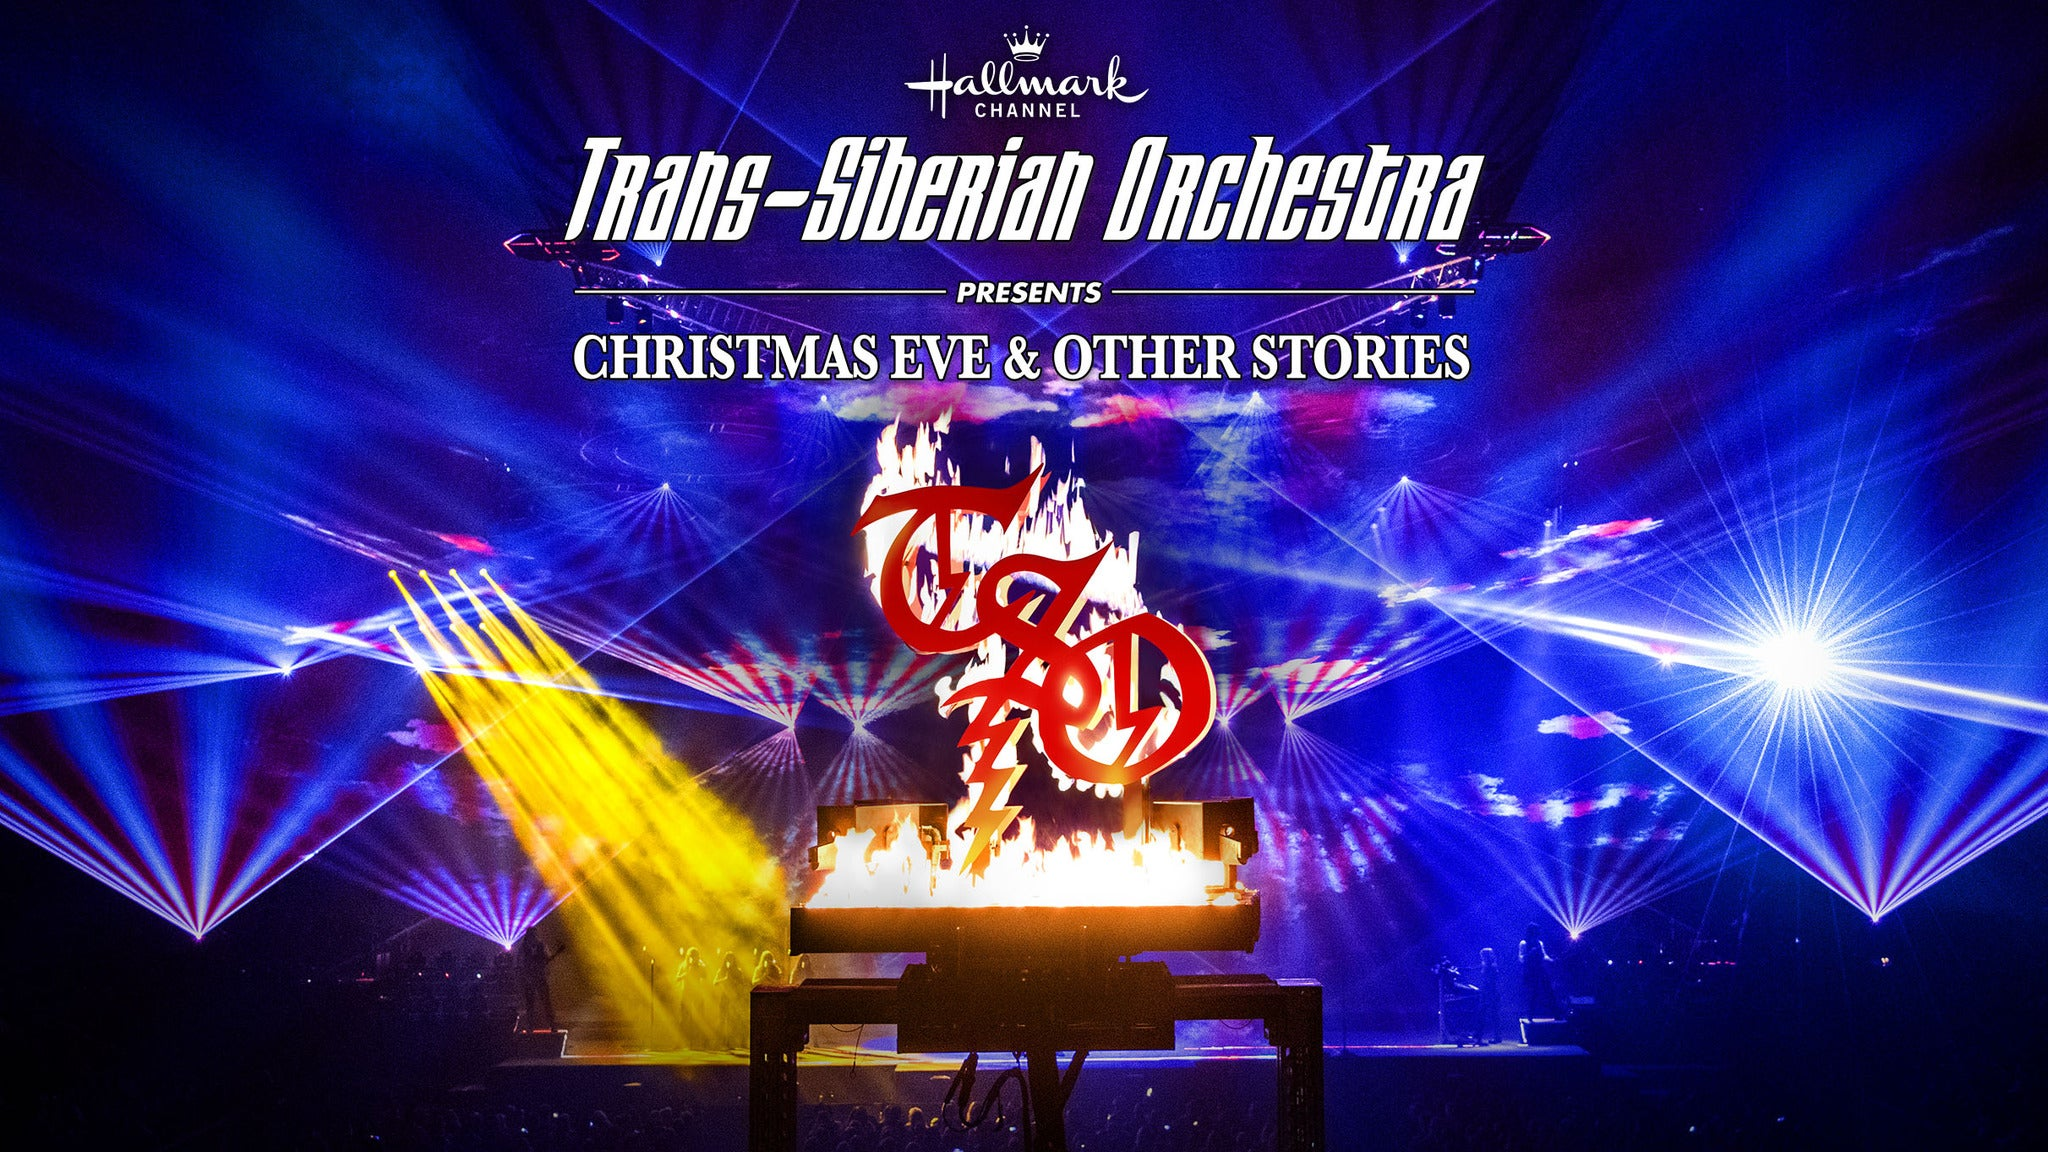 A Very Electric Christmas 2020 Events Near Me Trans Siberian Orchestra Tickets, 2020 2021 Concert Tour Dates